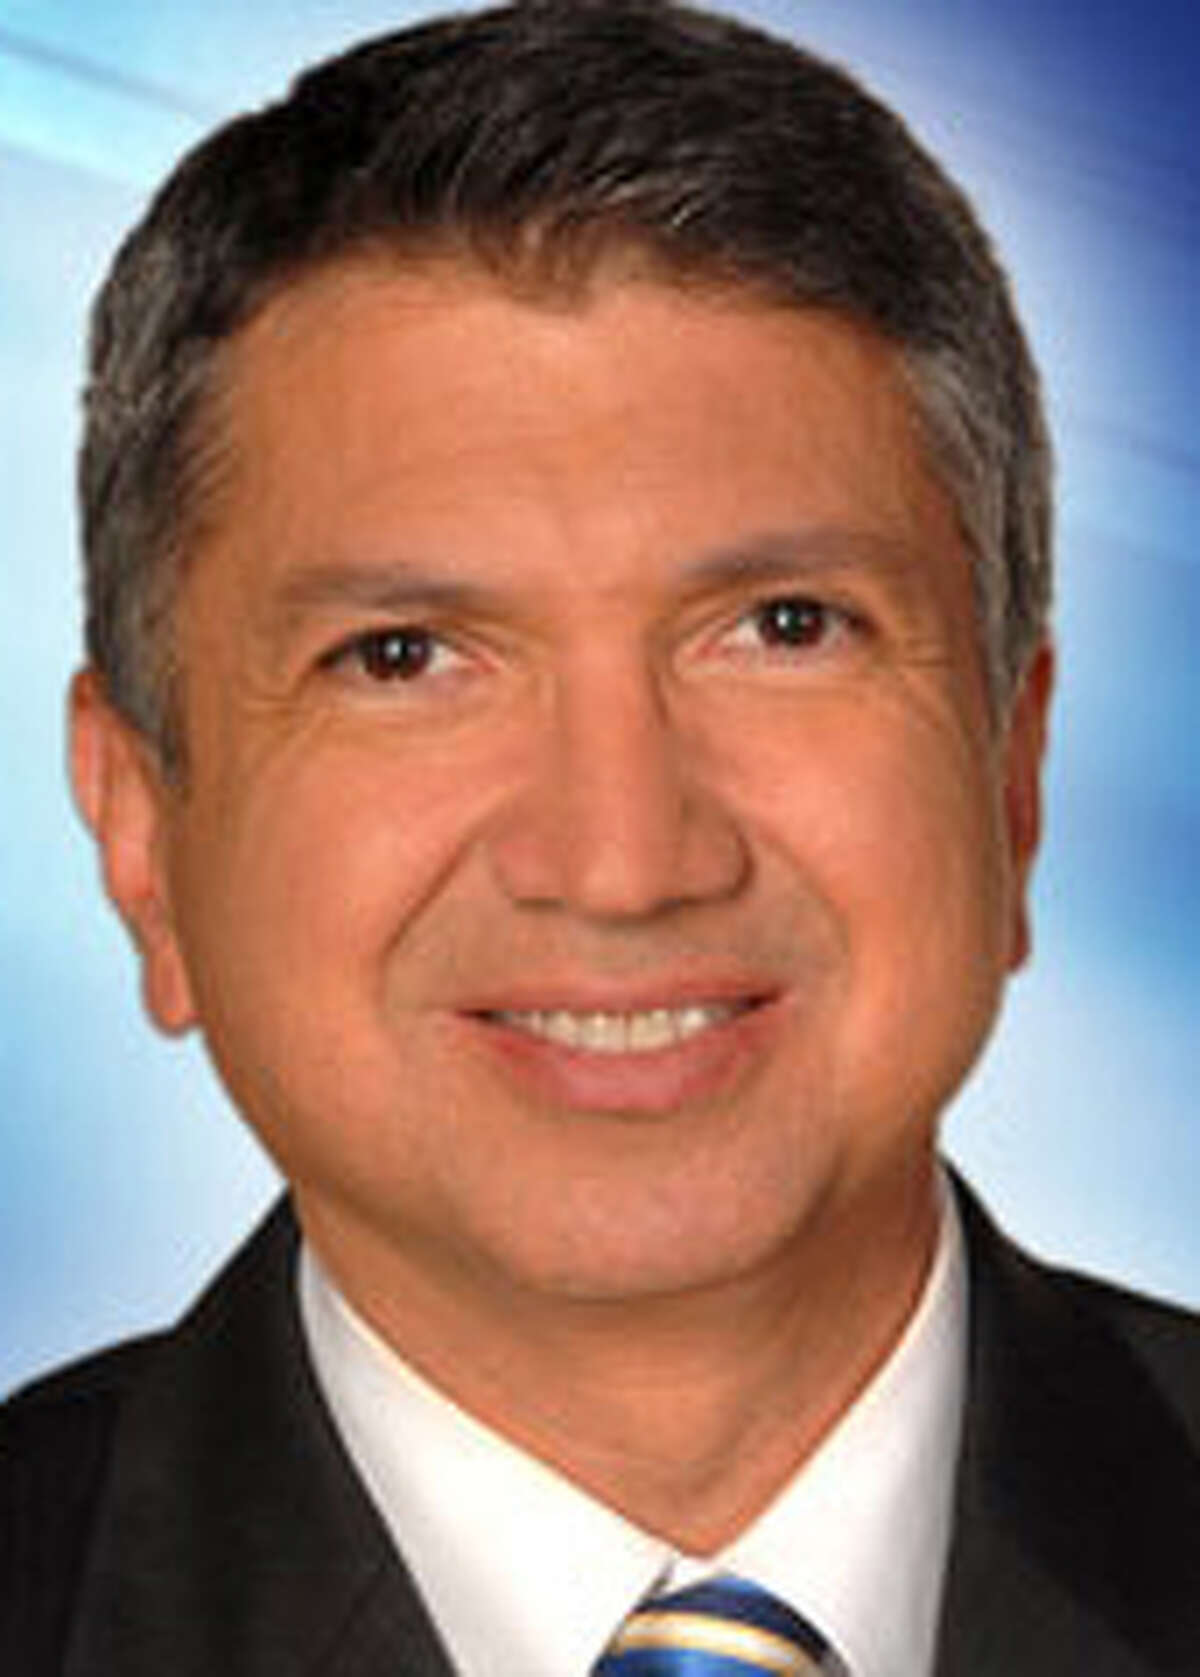 KHOU morning anchor Ron Trevino was arrested under suspicion of DWI on March 11 while leaving the rodeo. While the longtime anchor deals with his legal woes, take a look at TV anchors who have gotten into hot water over their controversial comments.